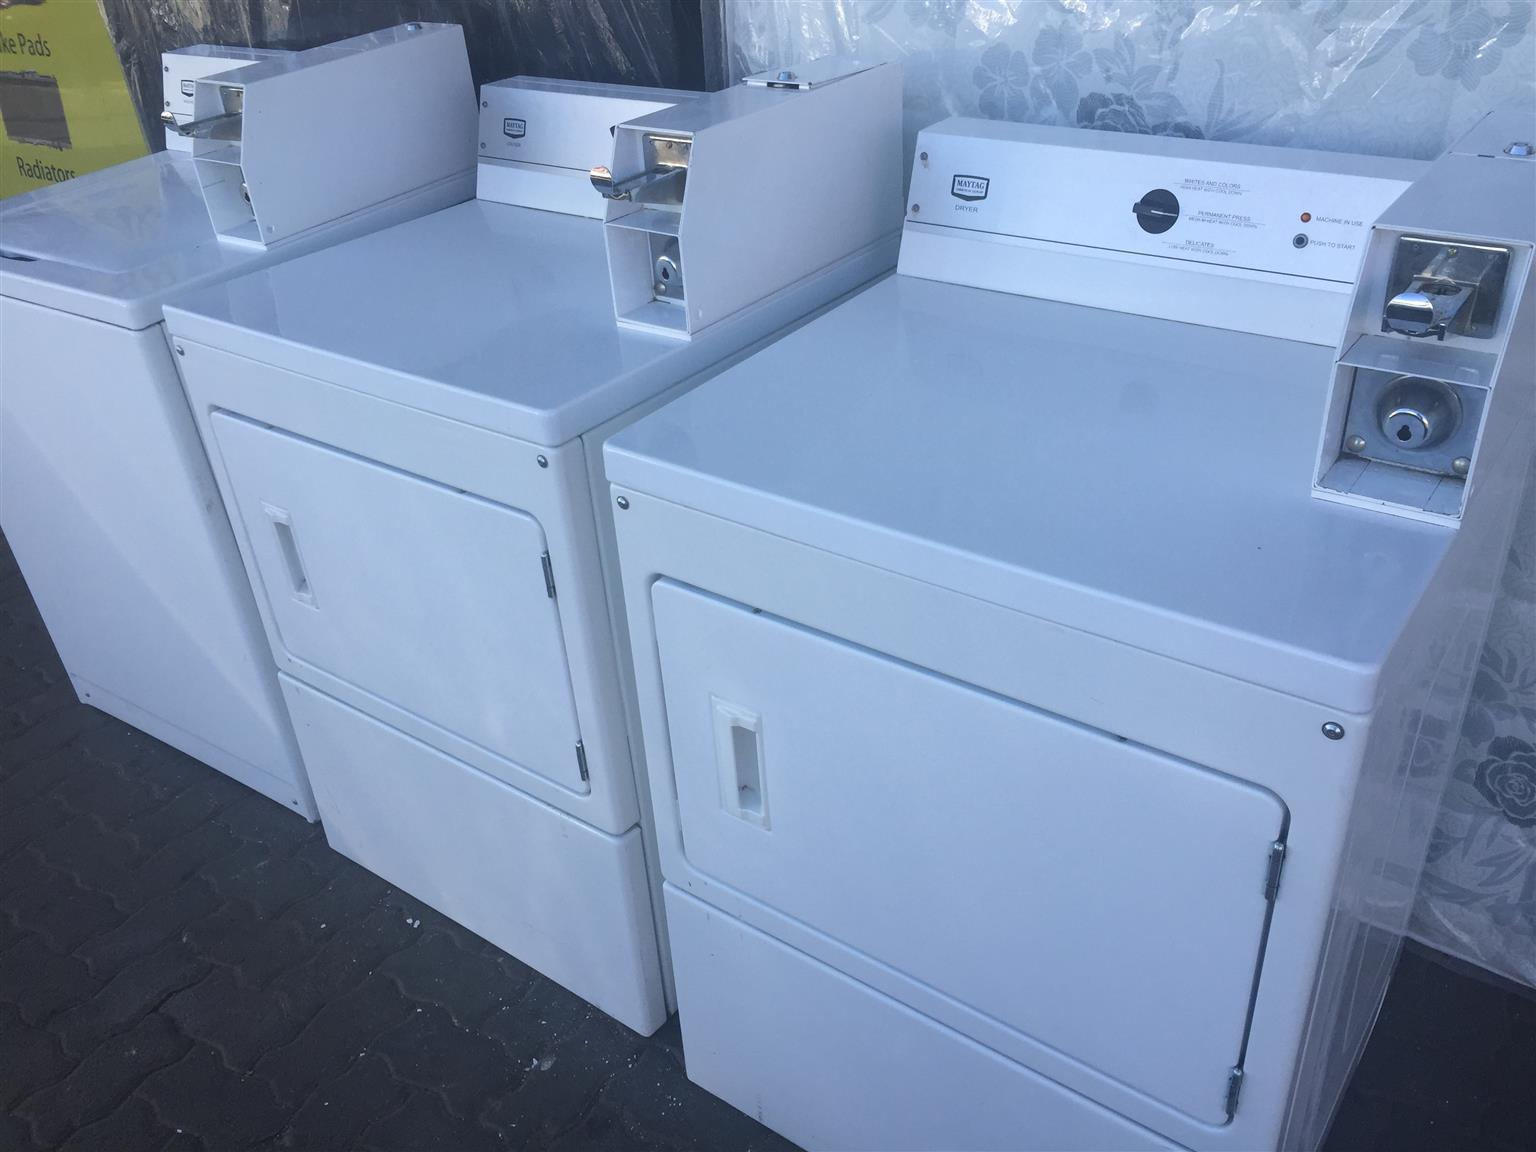 MayTag Washing Machines and Tumble Dryers